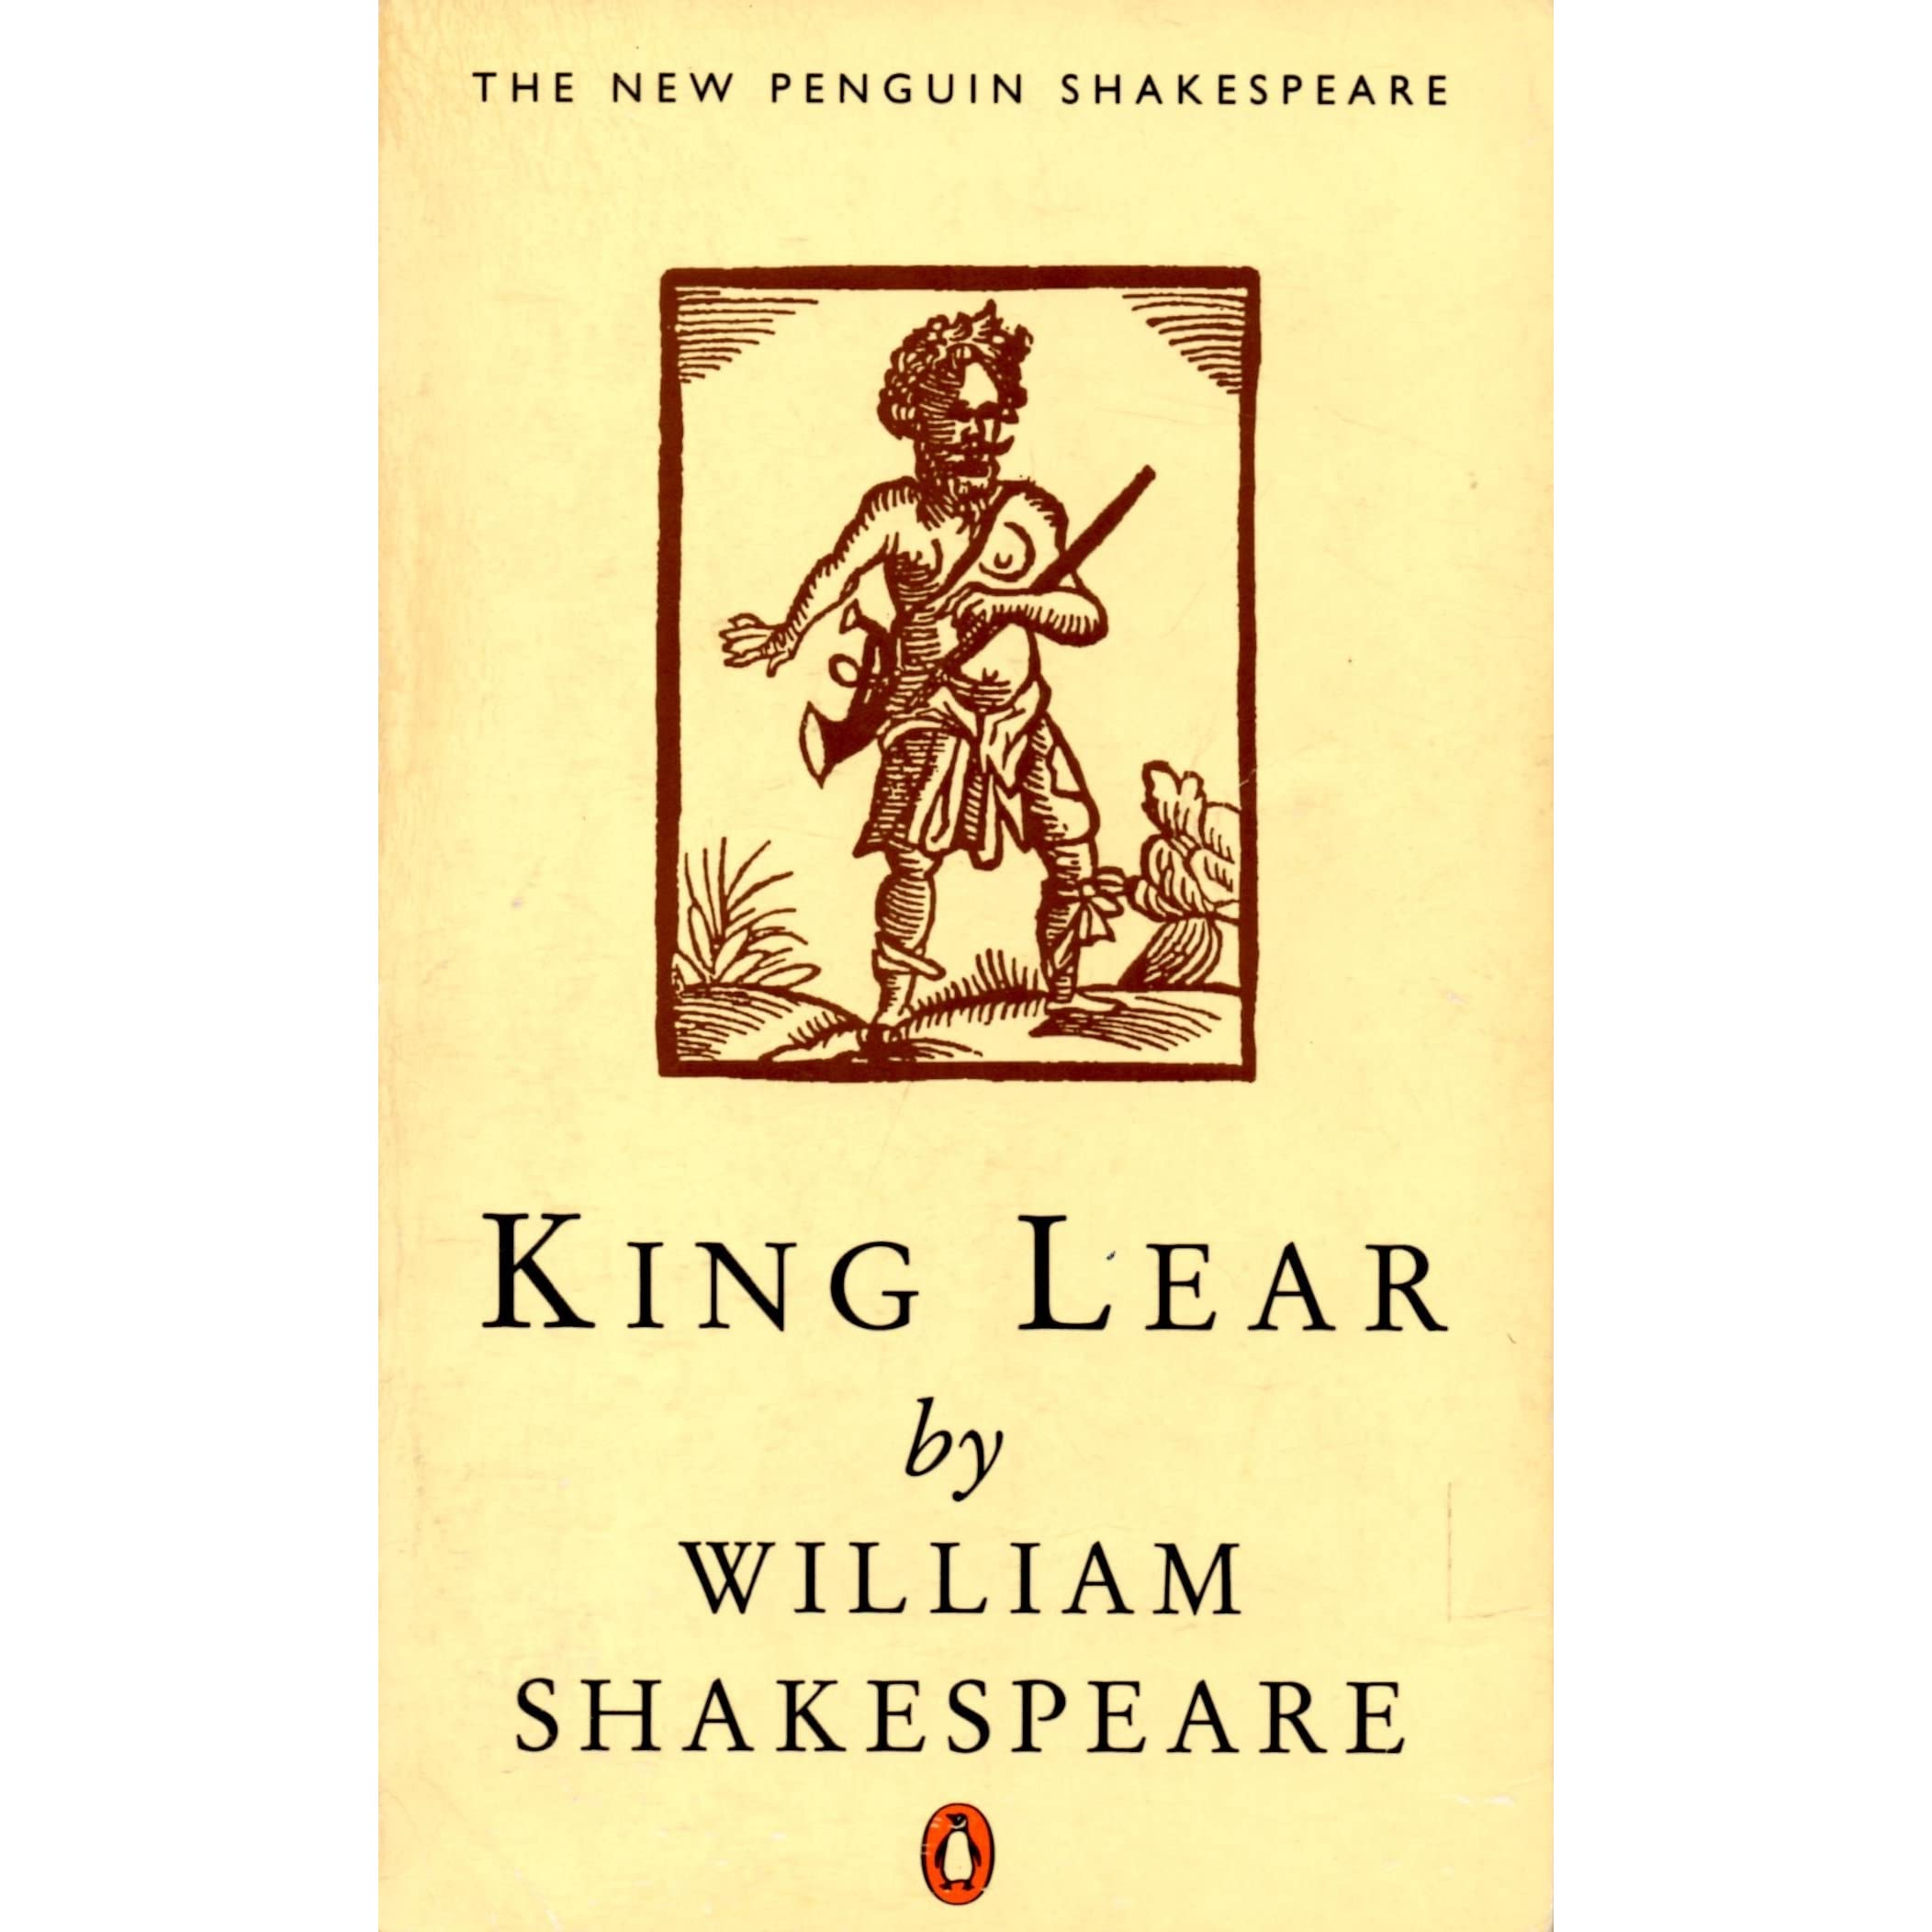 king lear bottoming out